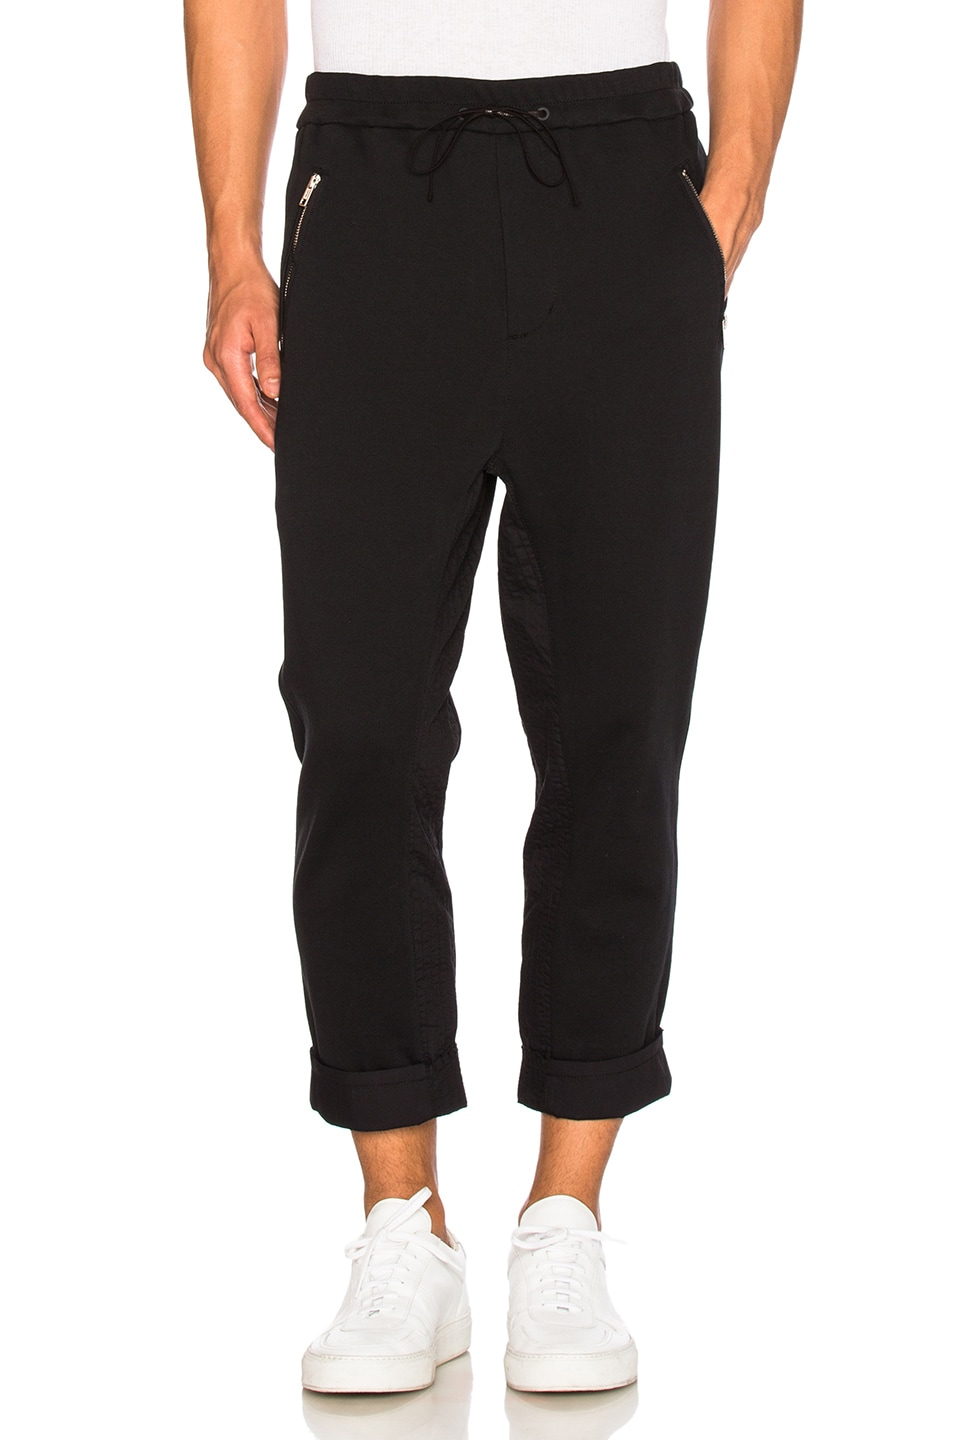 727a64f644a2 Image 1 of 3.1 phillip lim Cropped Sweatpants in Soft Black